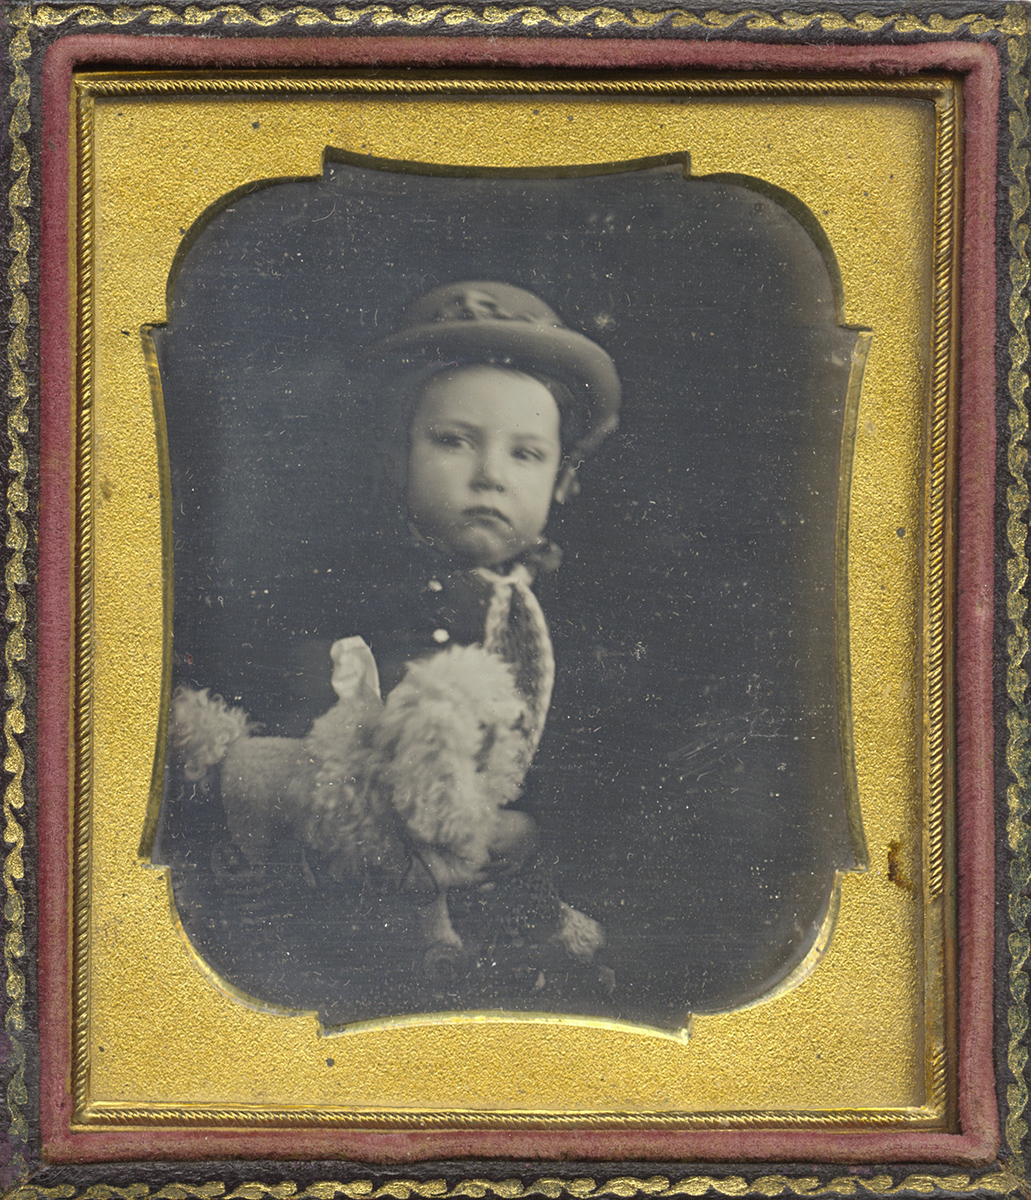 Portrait of a Young Child Wearing a Hat and Holding a Toy Poodle